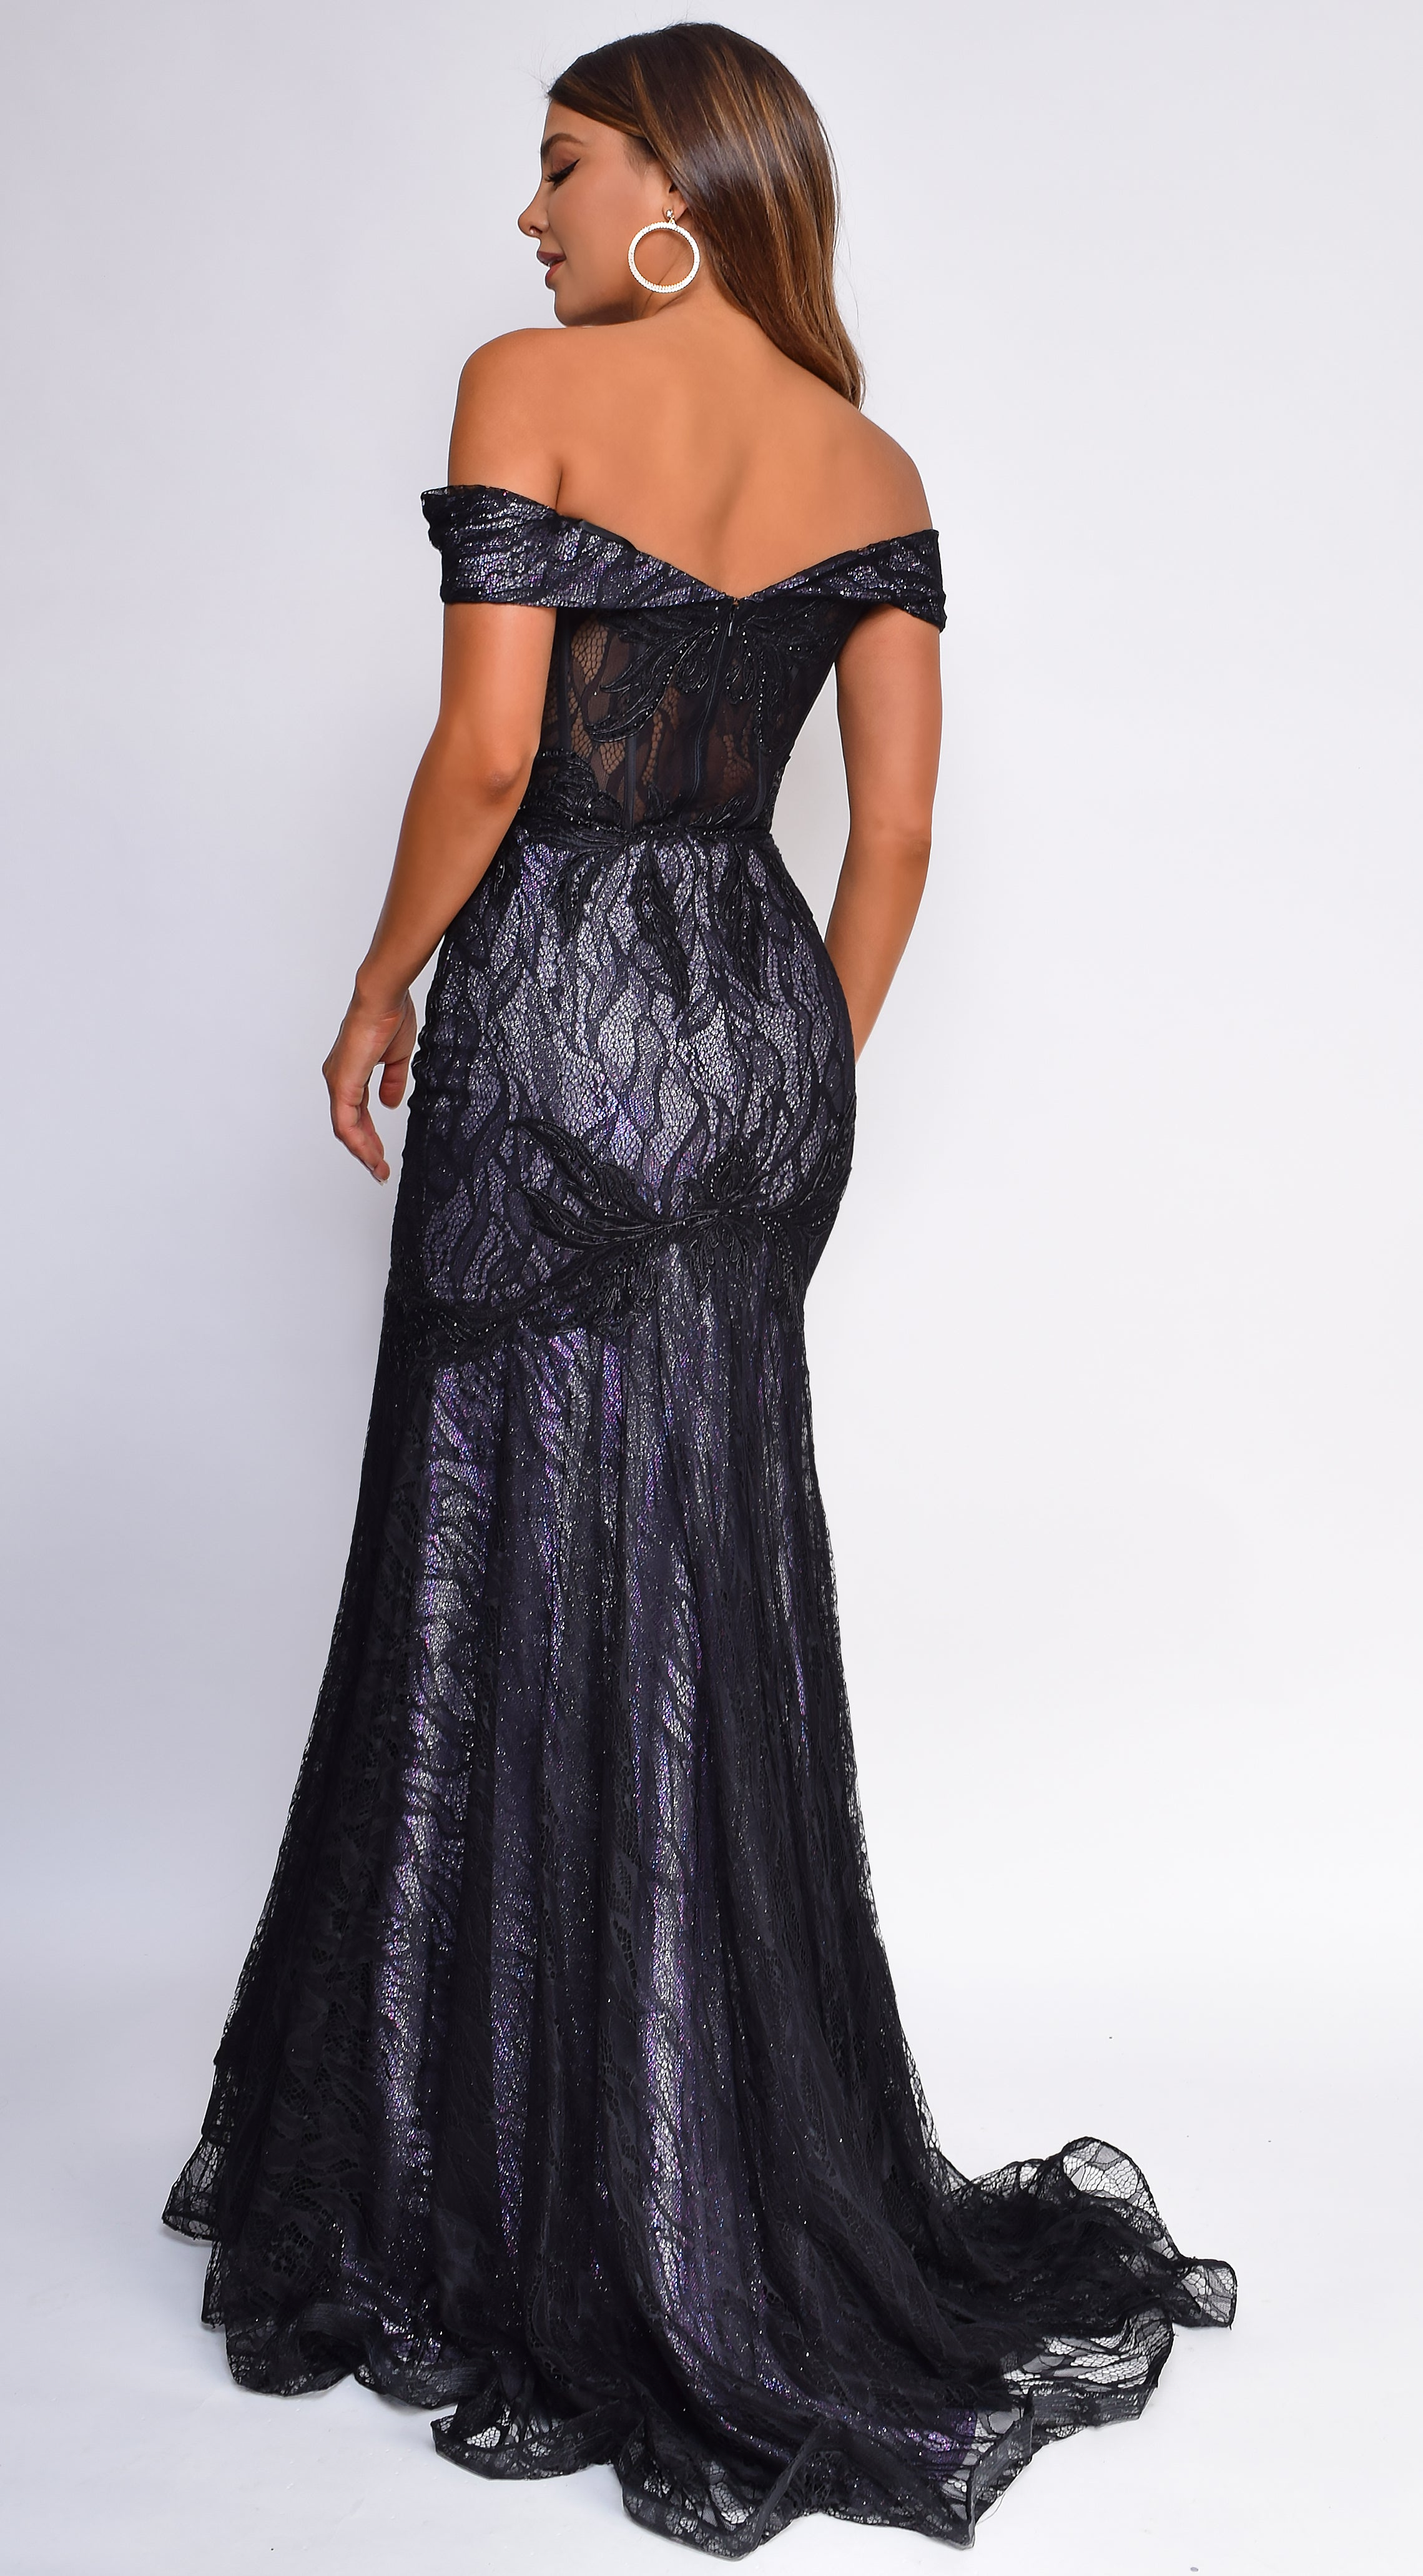 Floriana Black Lilac Off Shoulder Mermaid Lace Gown